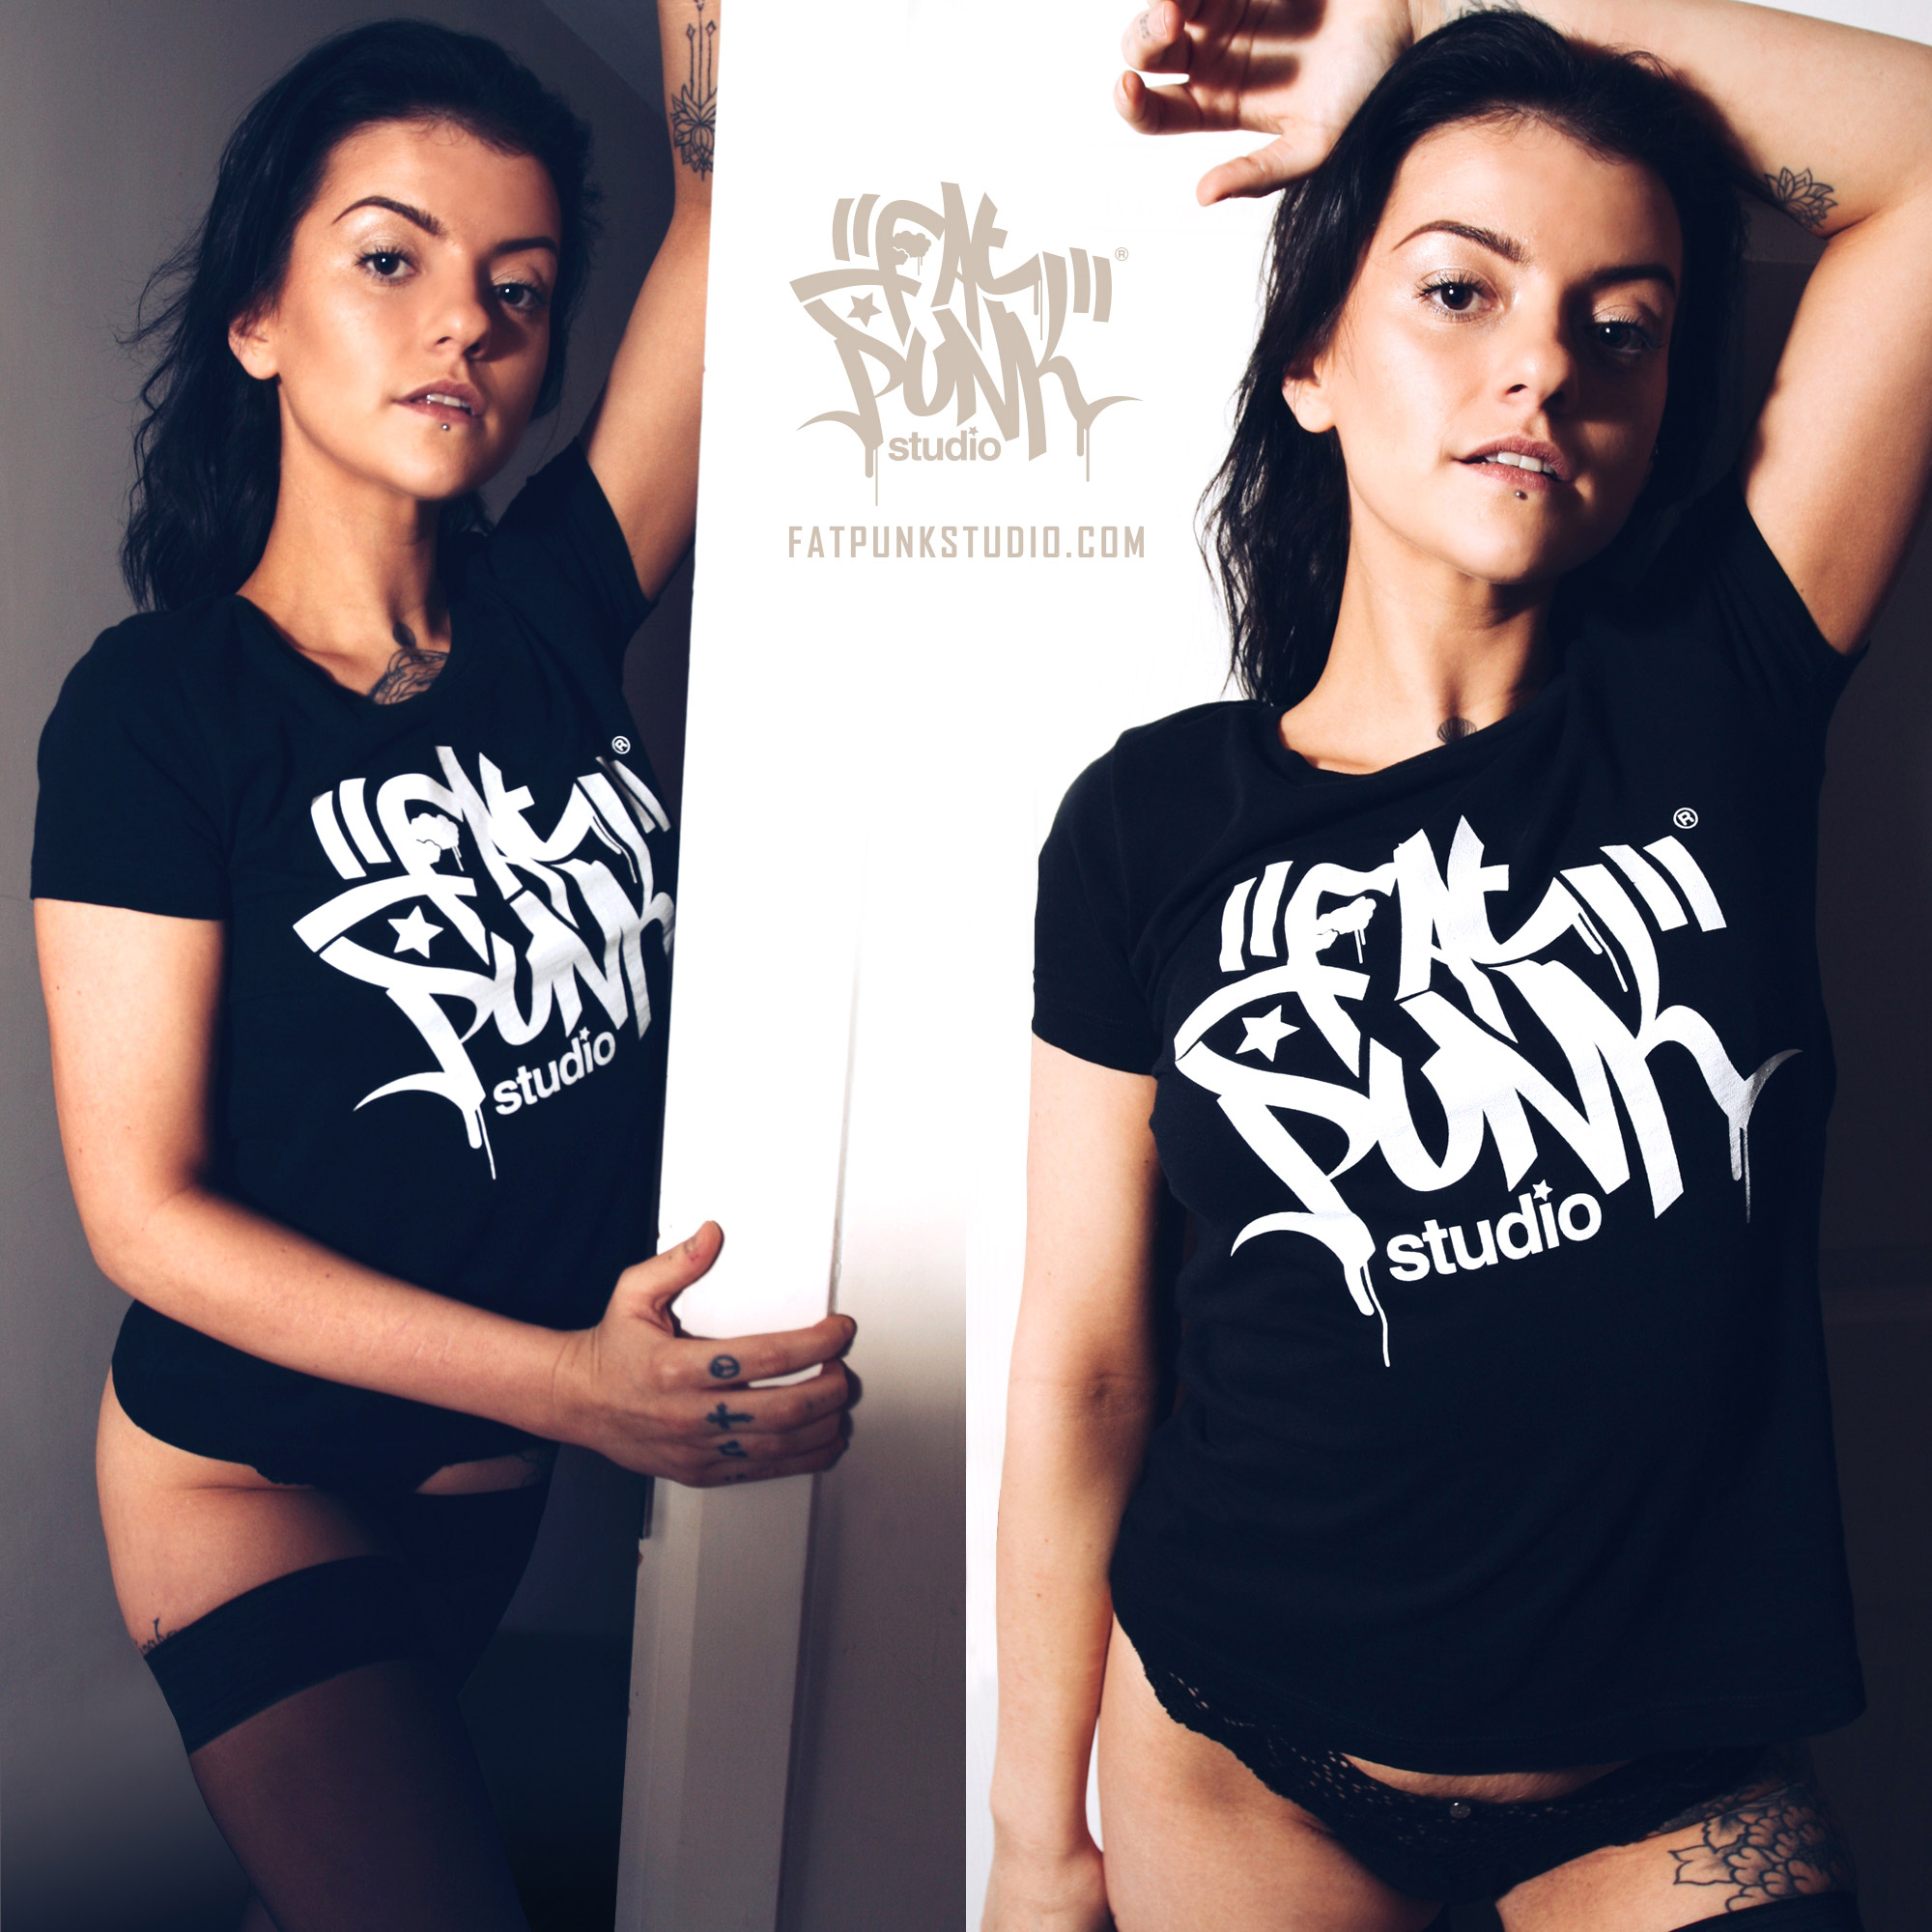 model-trikky-izzy-fat-punk-studio-02